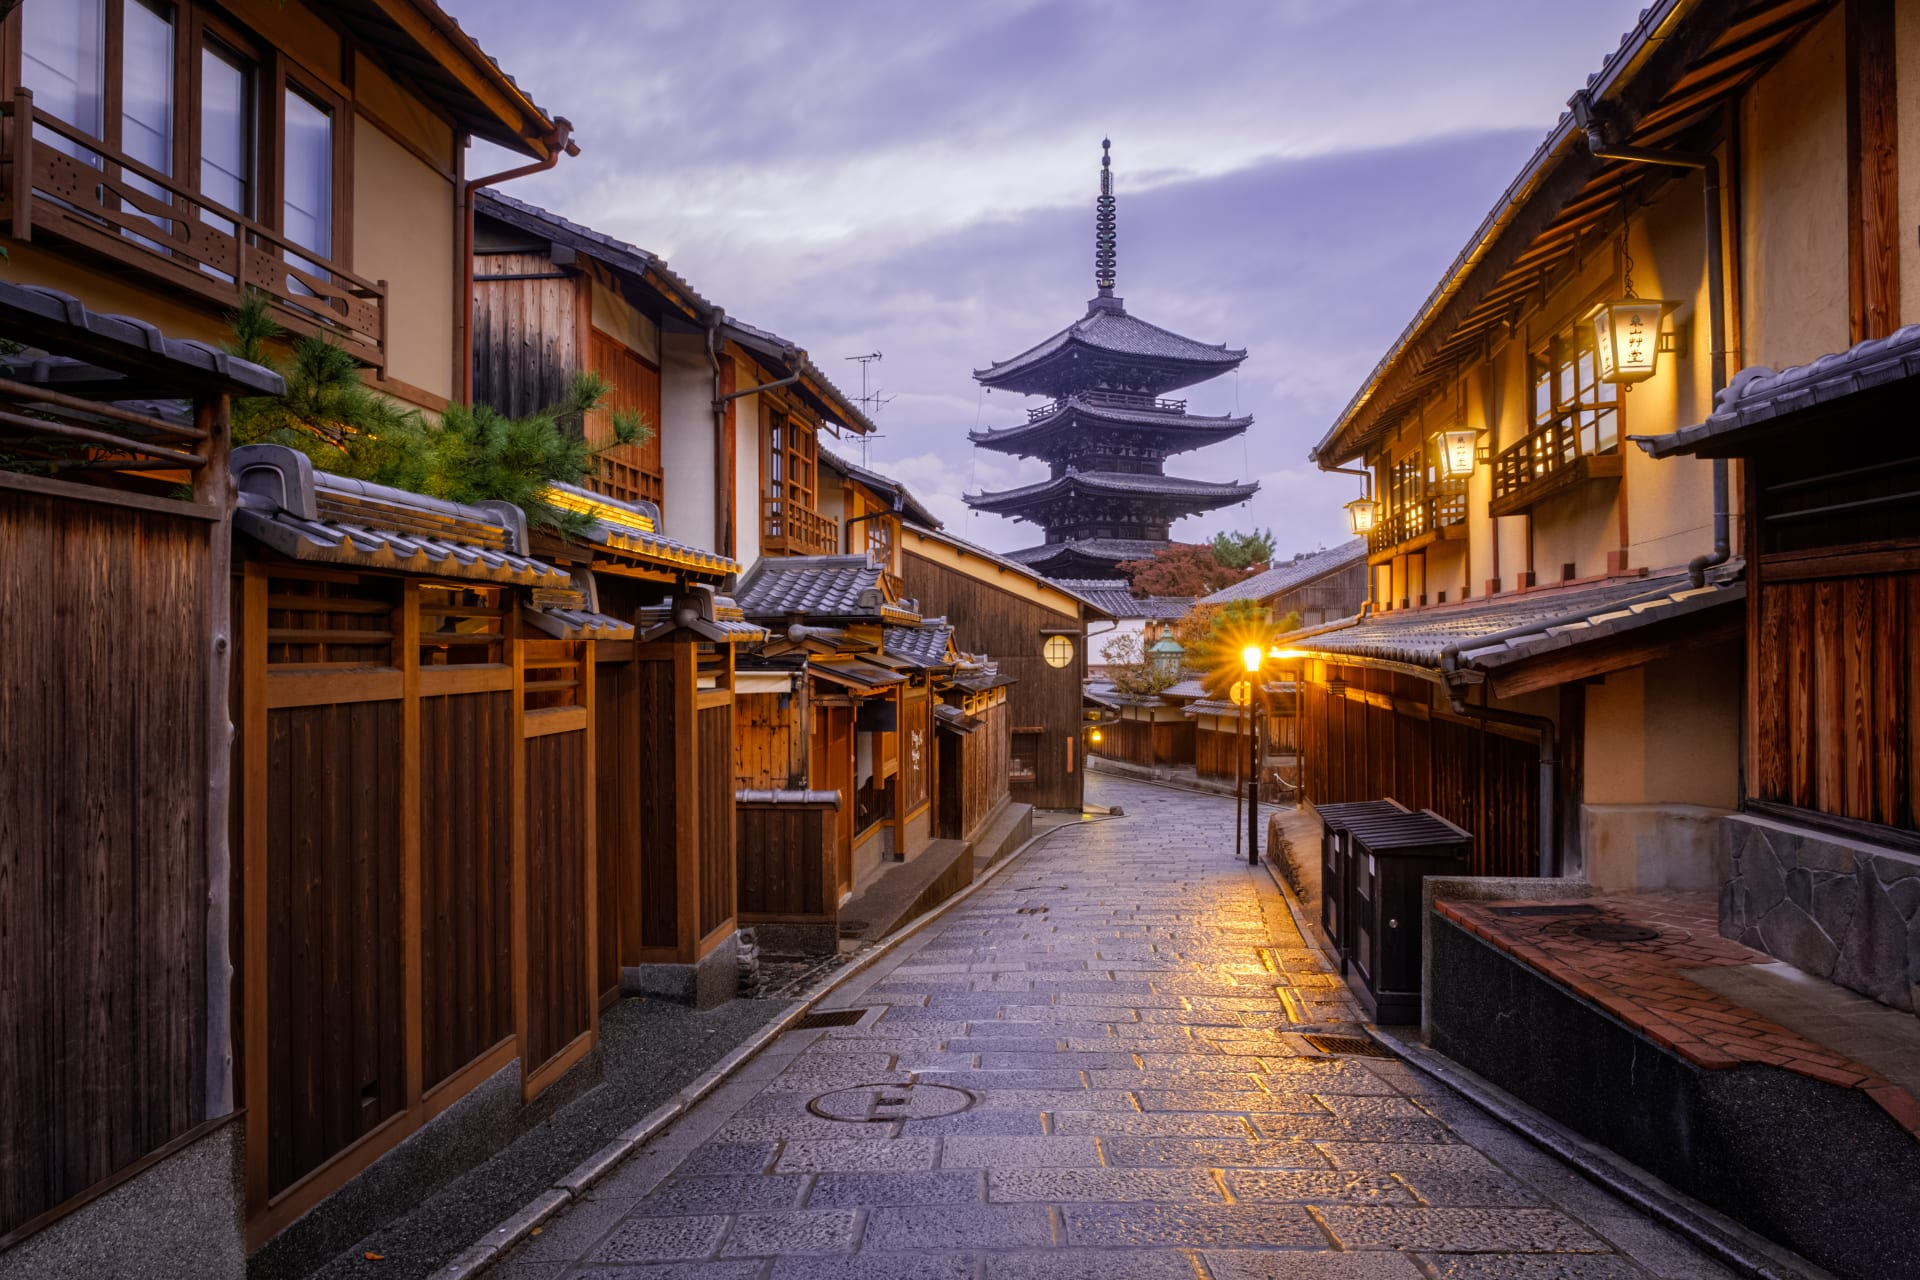 Kyoto - Discover Kyoto, the Old Capital of Japan: Virtually Learn About its History at Higashiyama